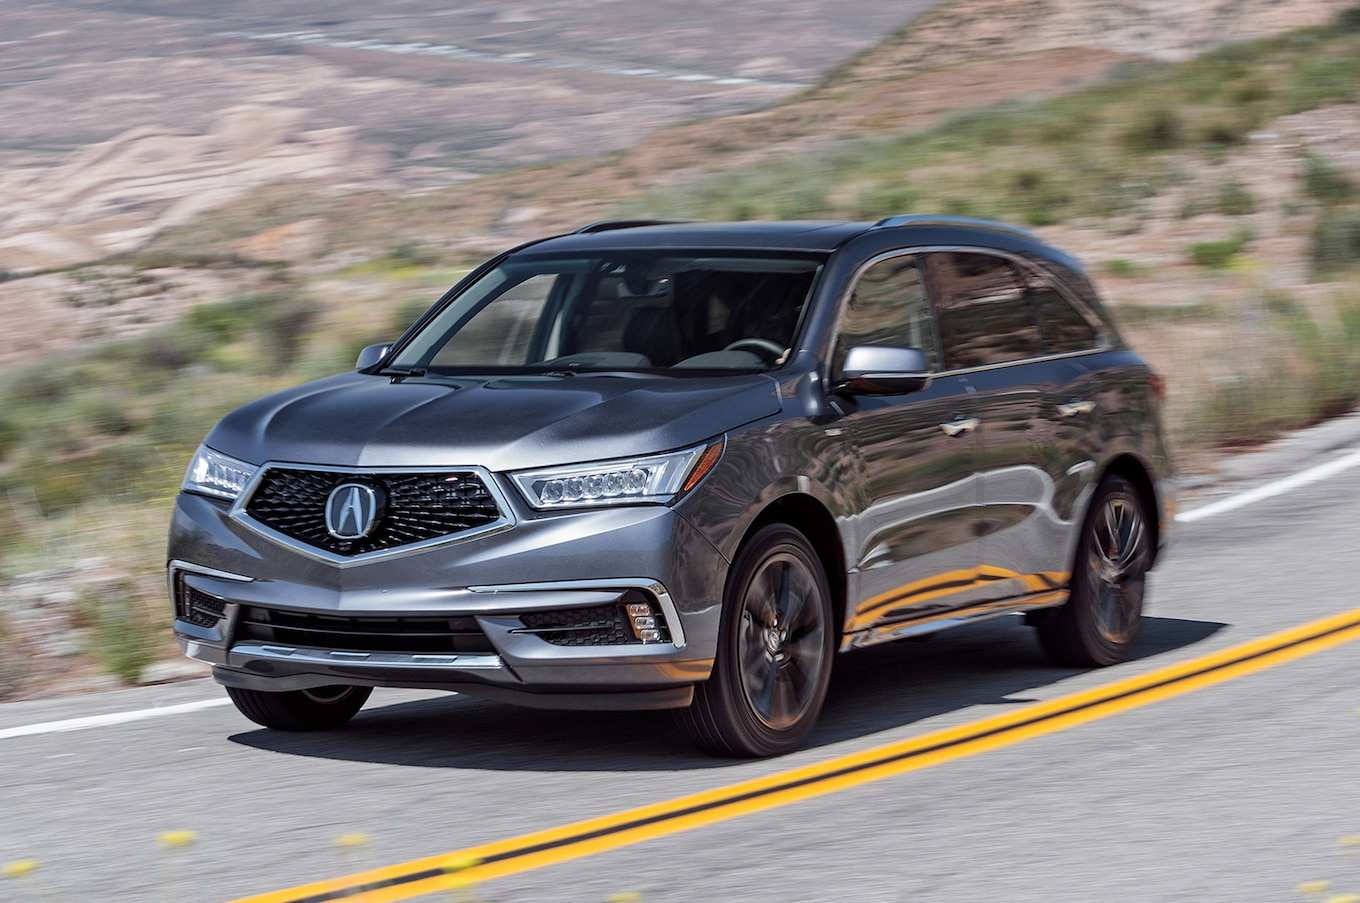 68 Gallery of 2020 Acura Mdx Plug In Hybrid New Concept with 2020 Acura Mdx Plug In Hybrid